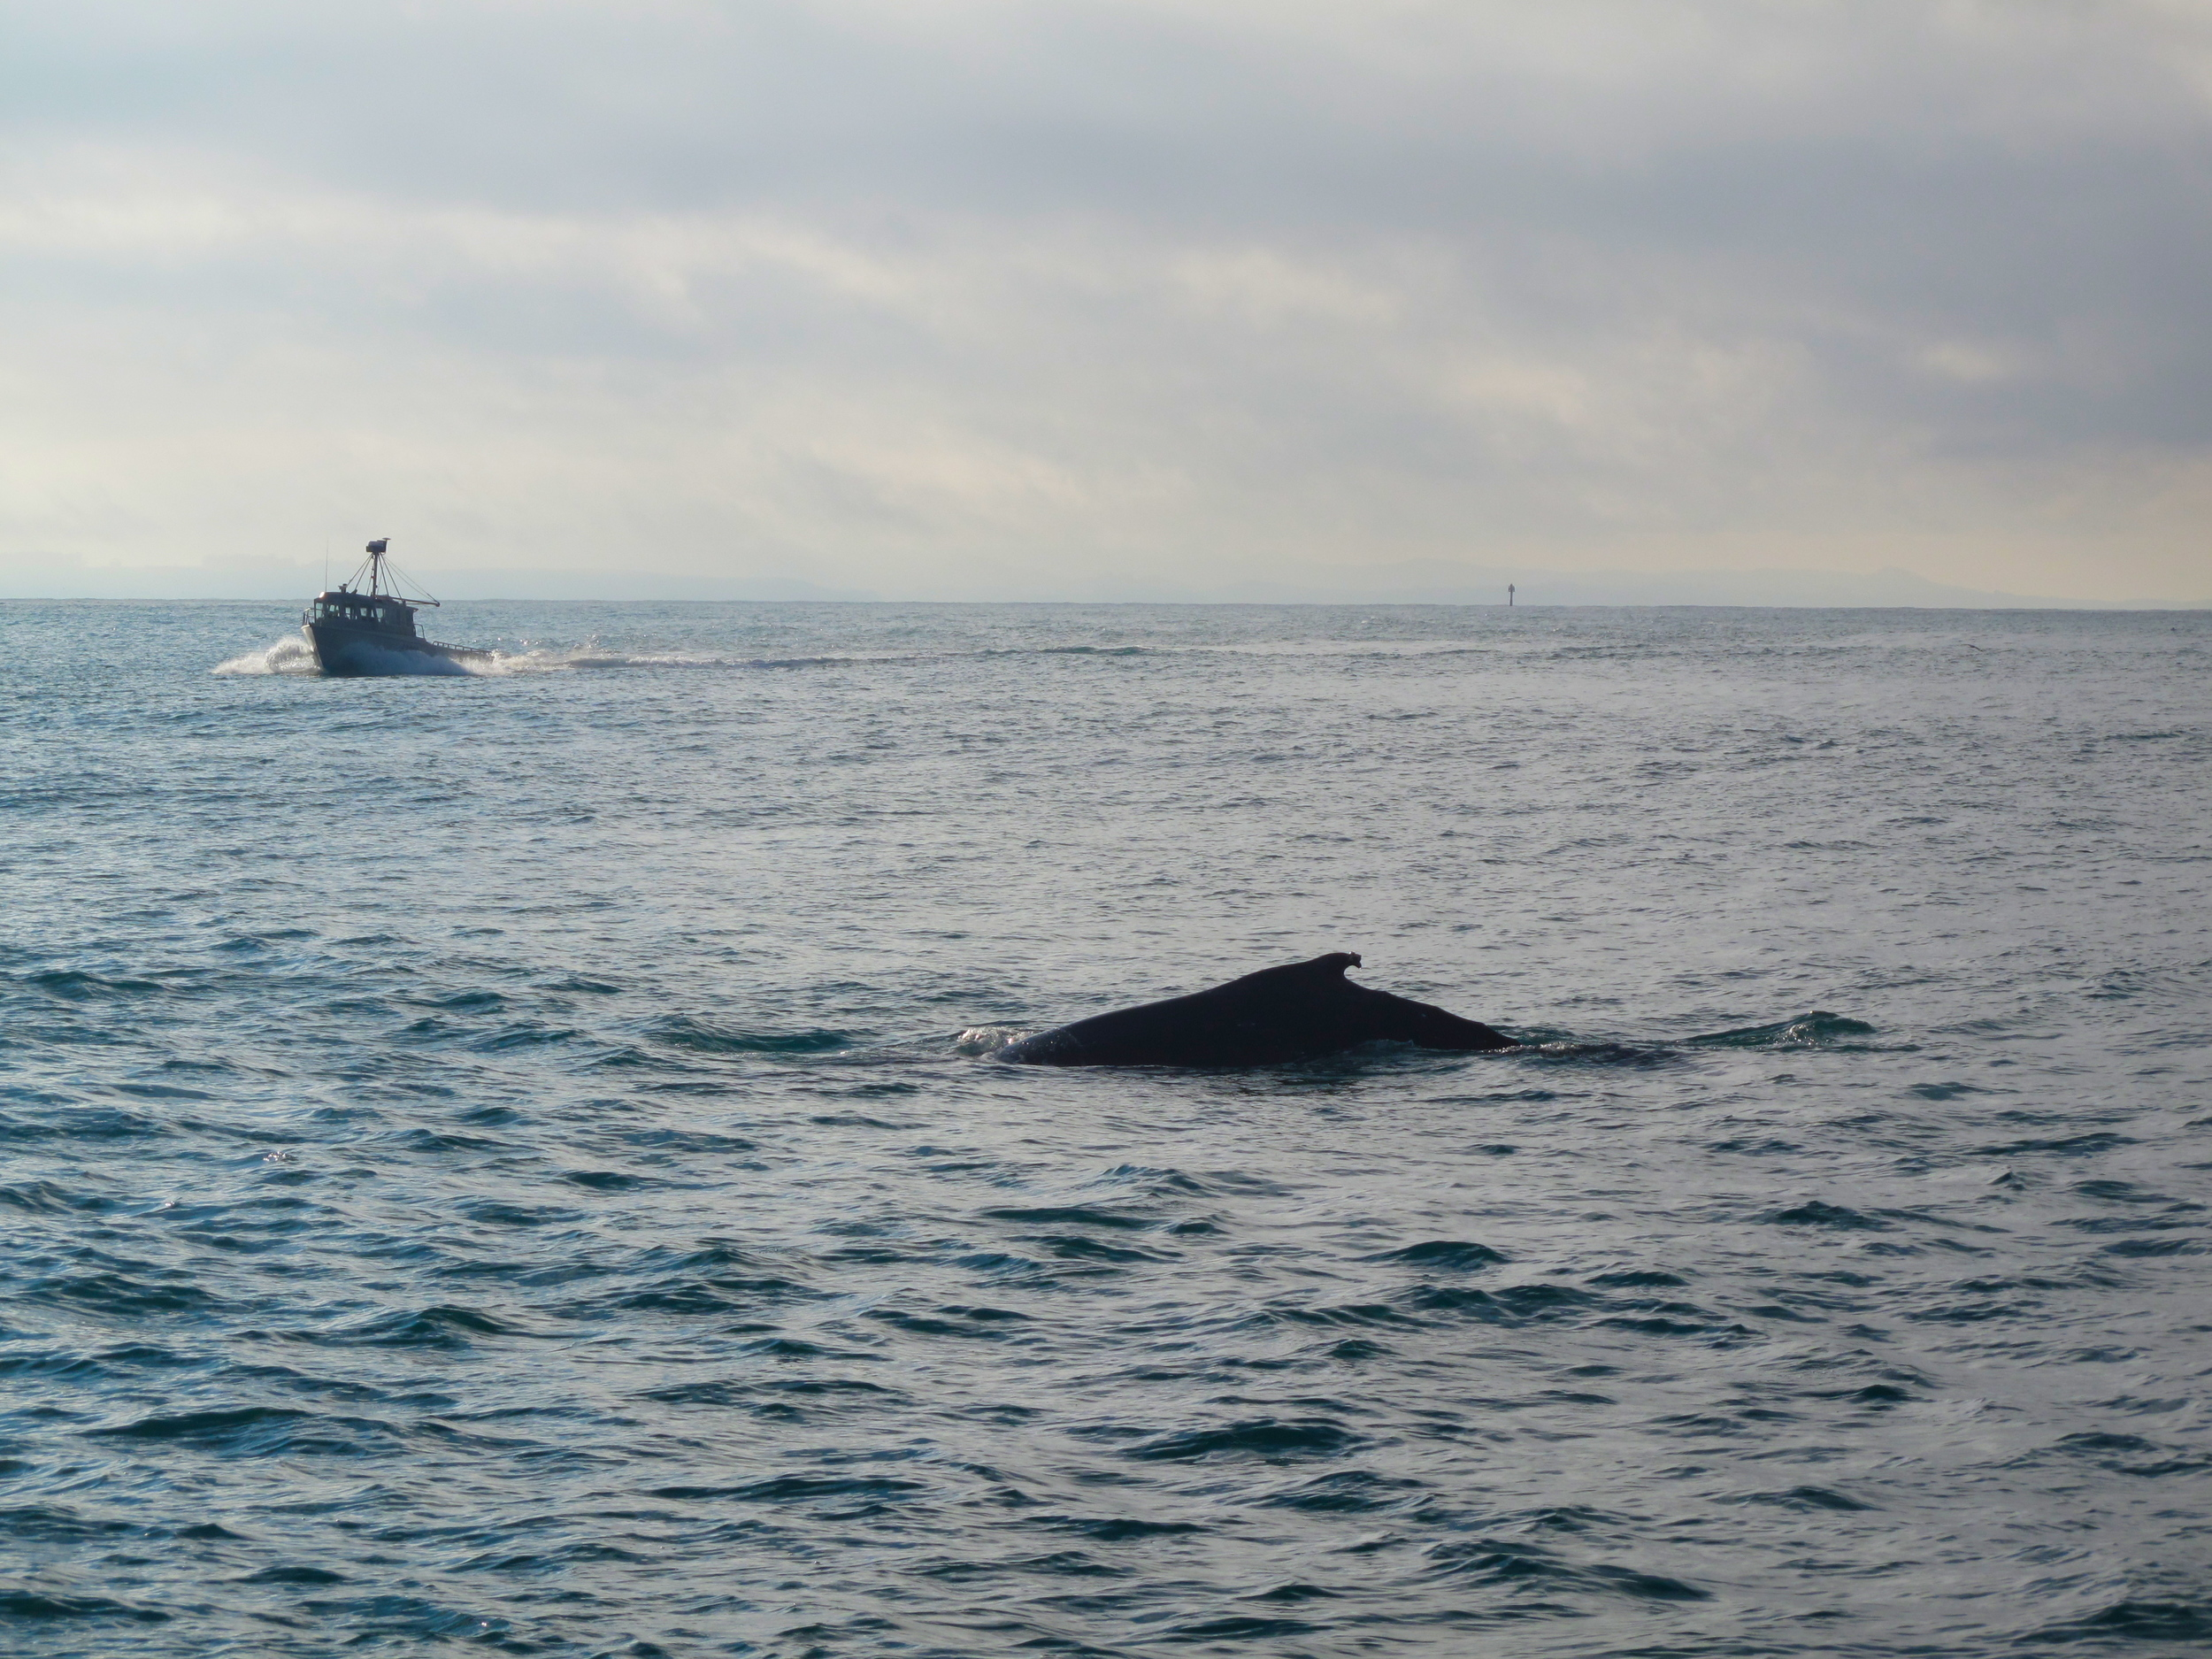 Humpback whale silhouette and boat in Dunedin harbour